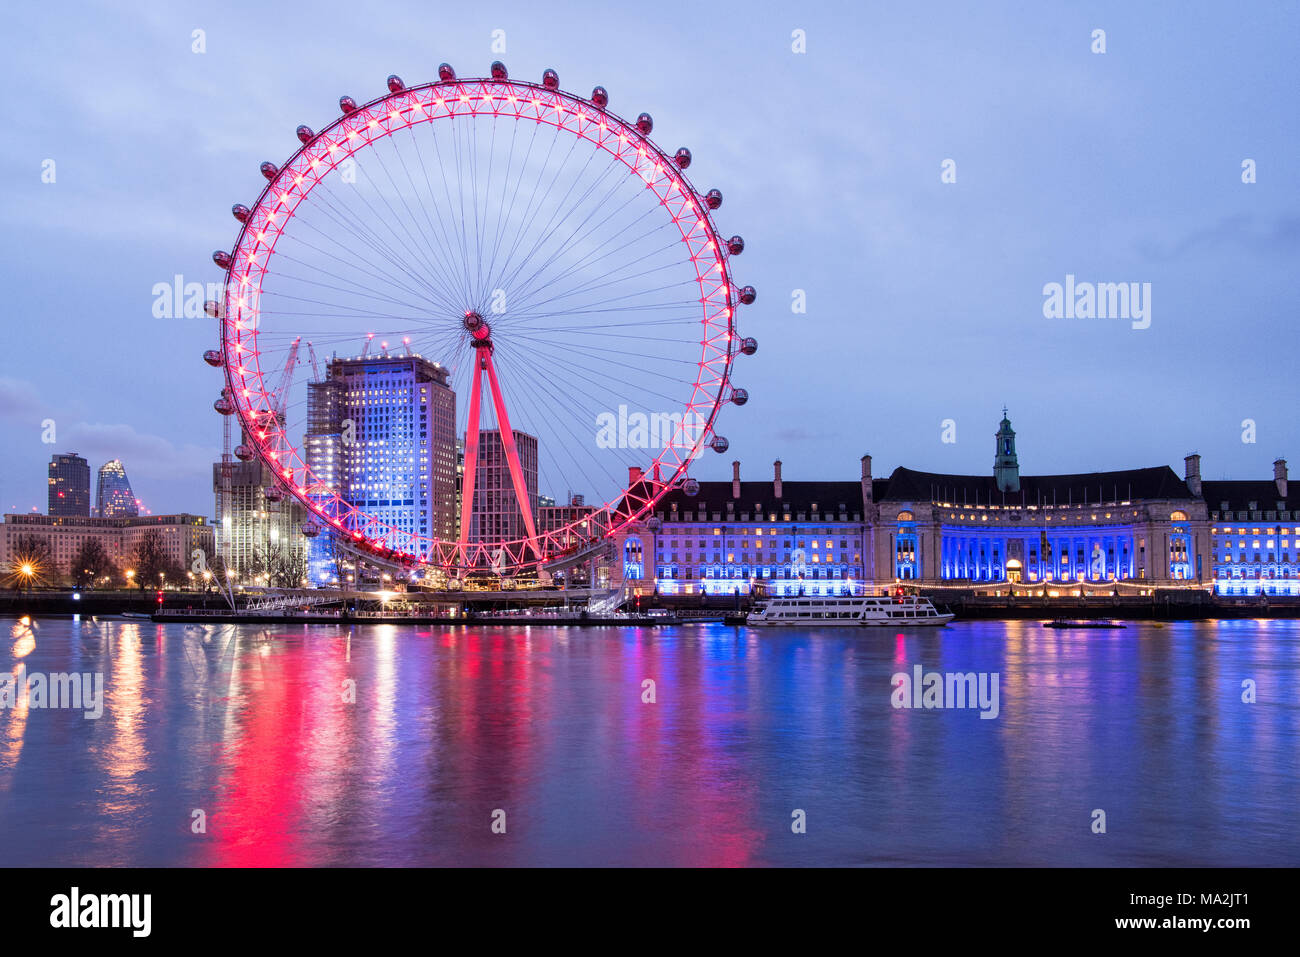 Sunrise at River Thames, looking towards London Eye and County Hall, London, England - Stock Image